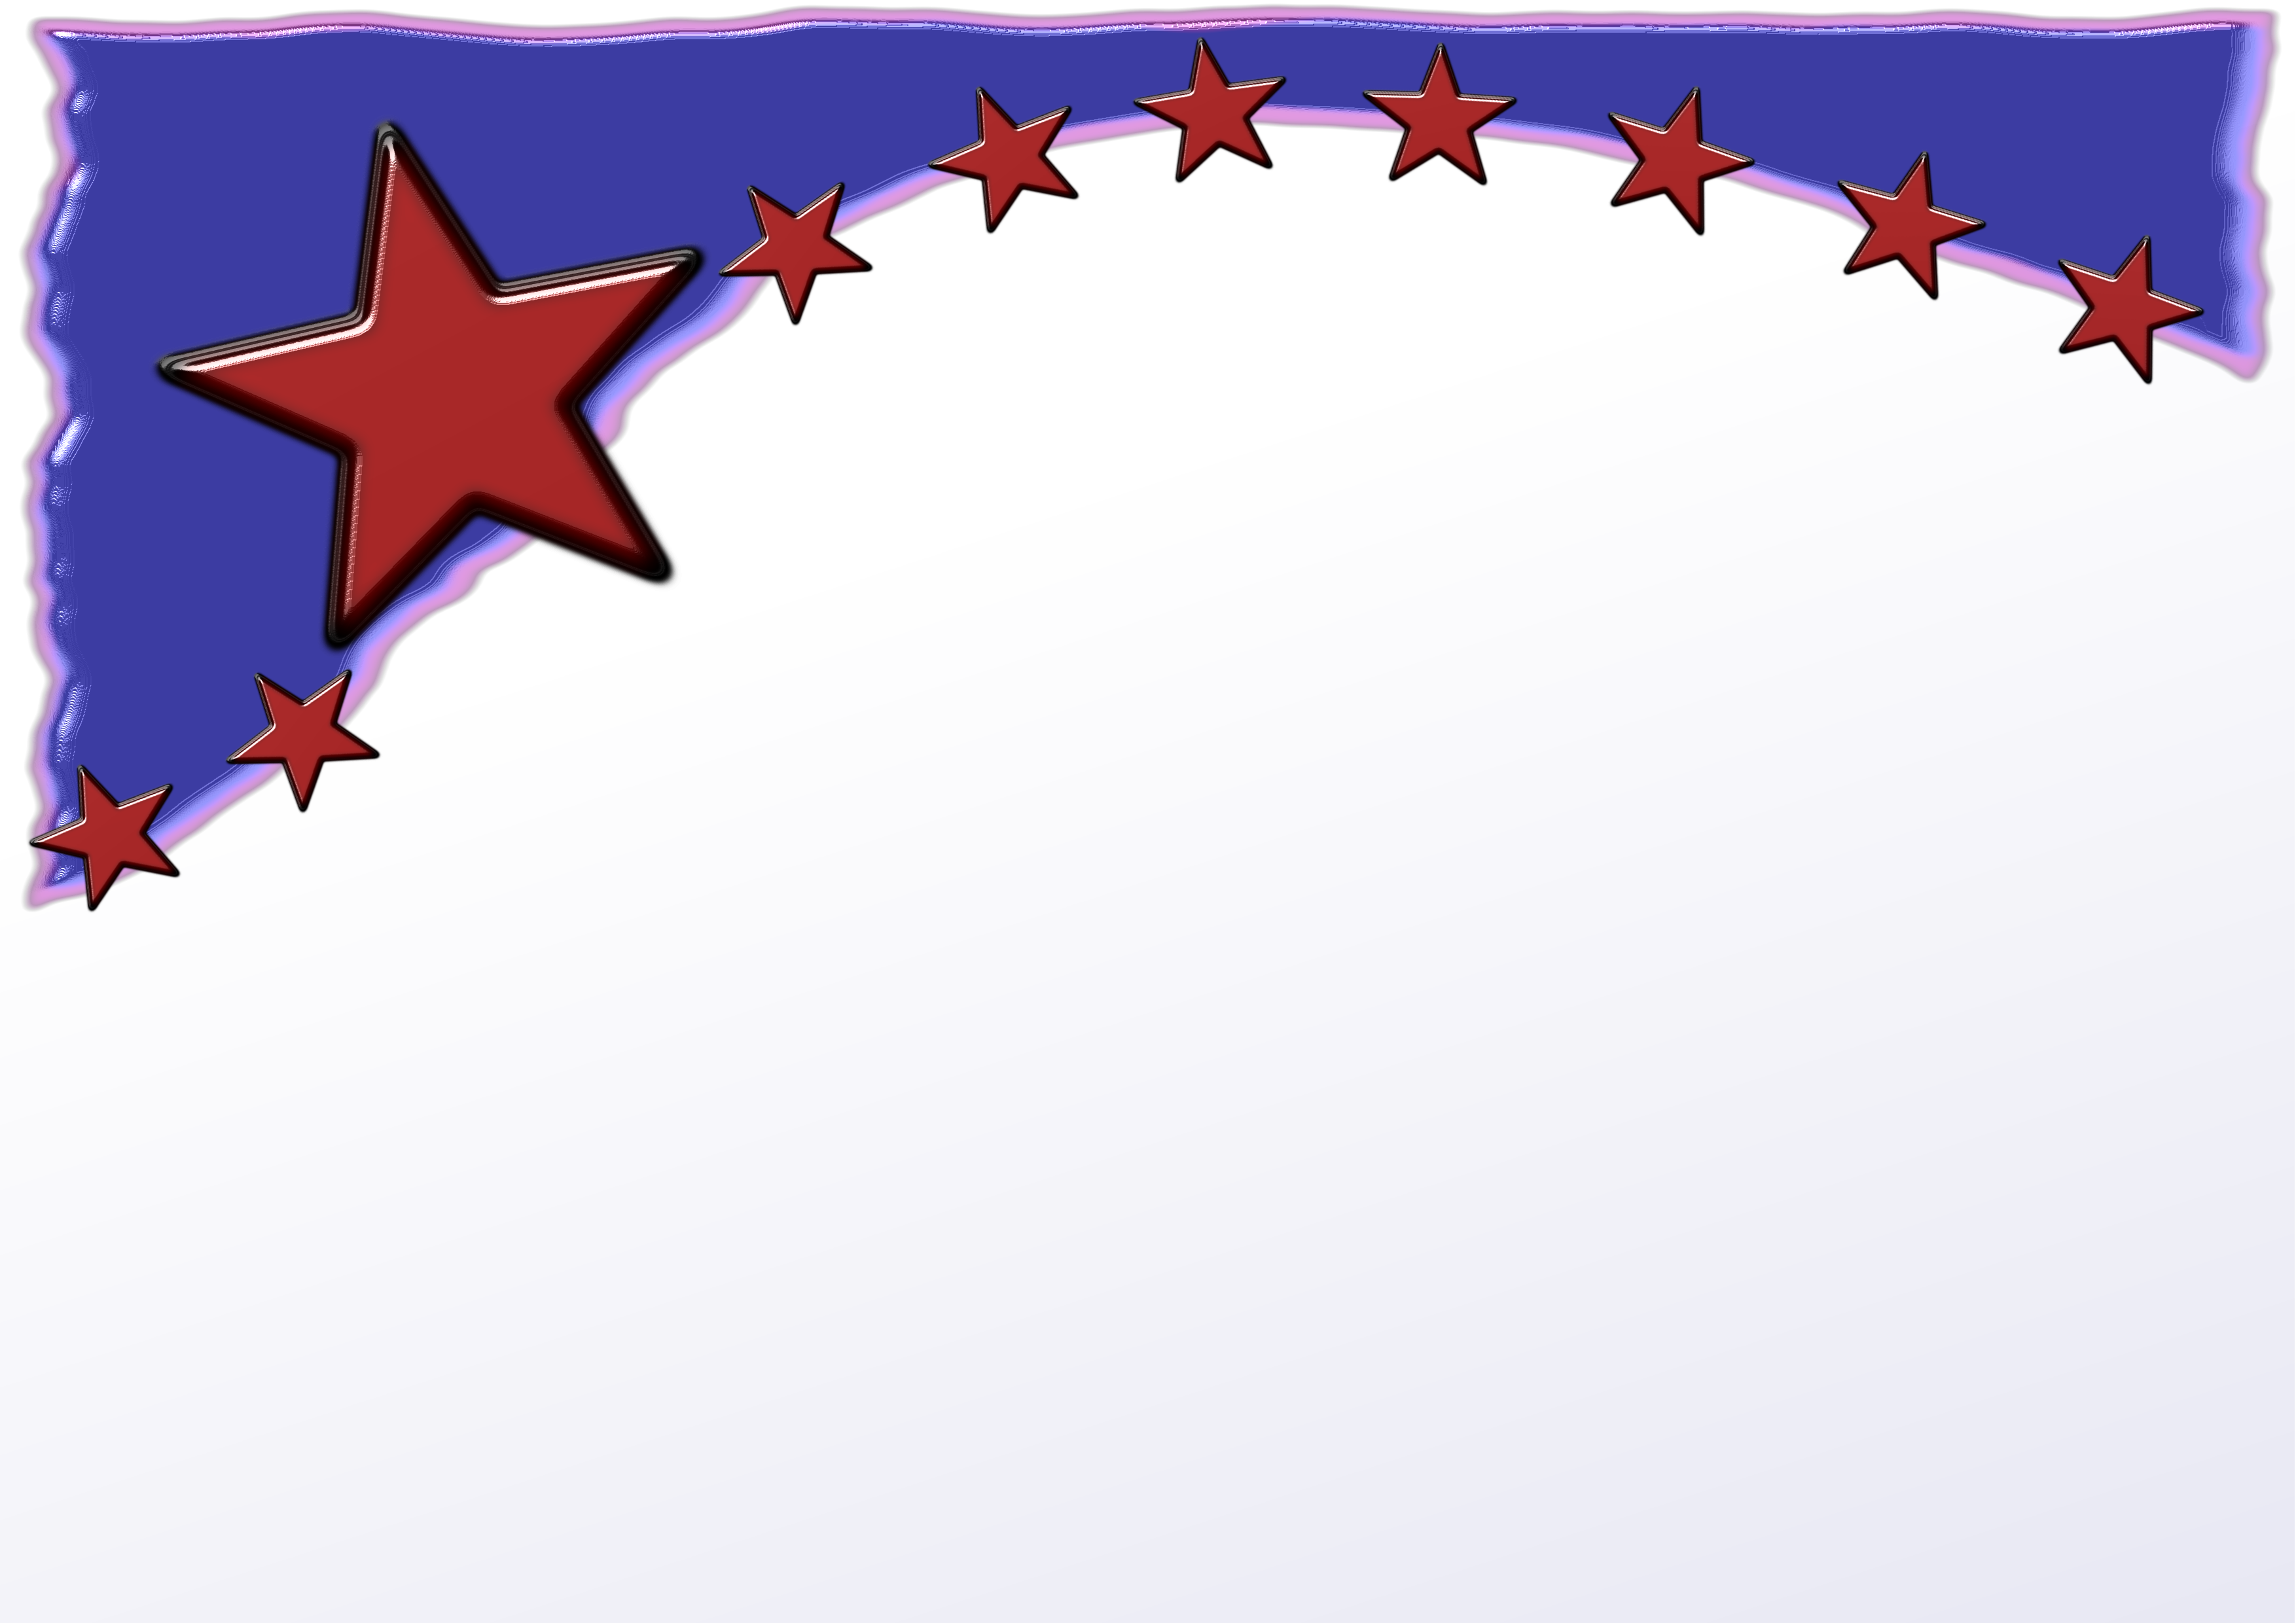 Star banner clipart clipart freeuse Usbanner | Free Images at Clker.com - vector clip art online ... clipart freeuse